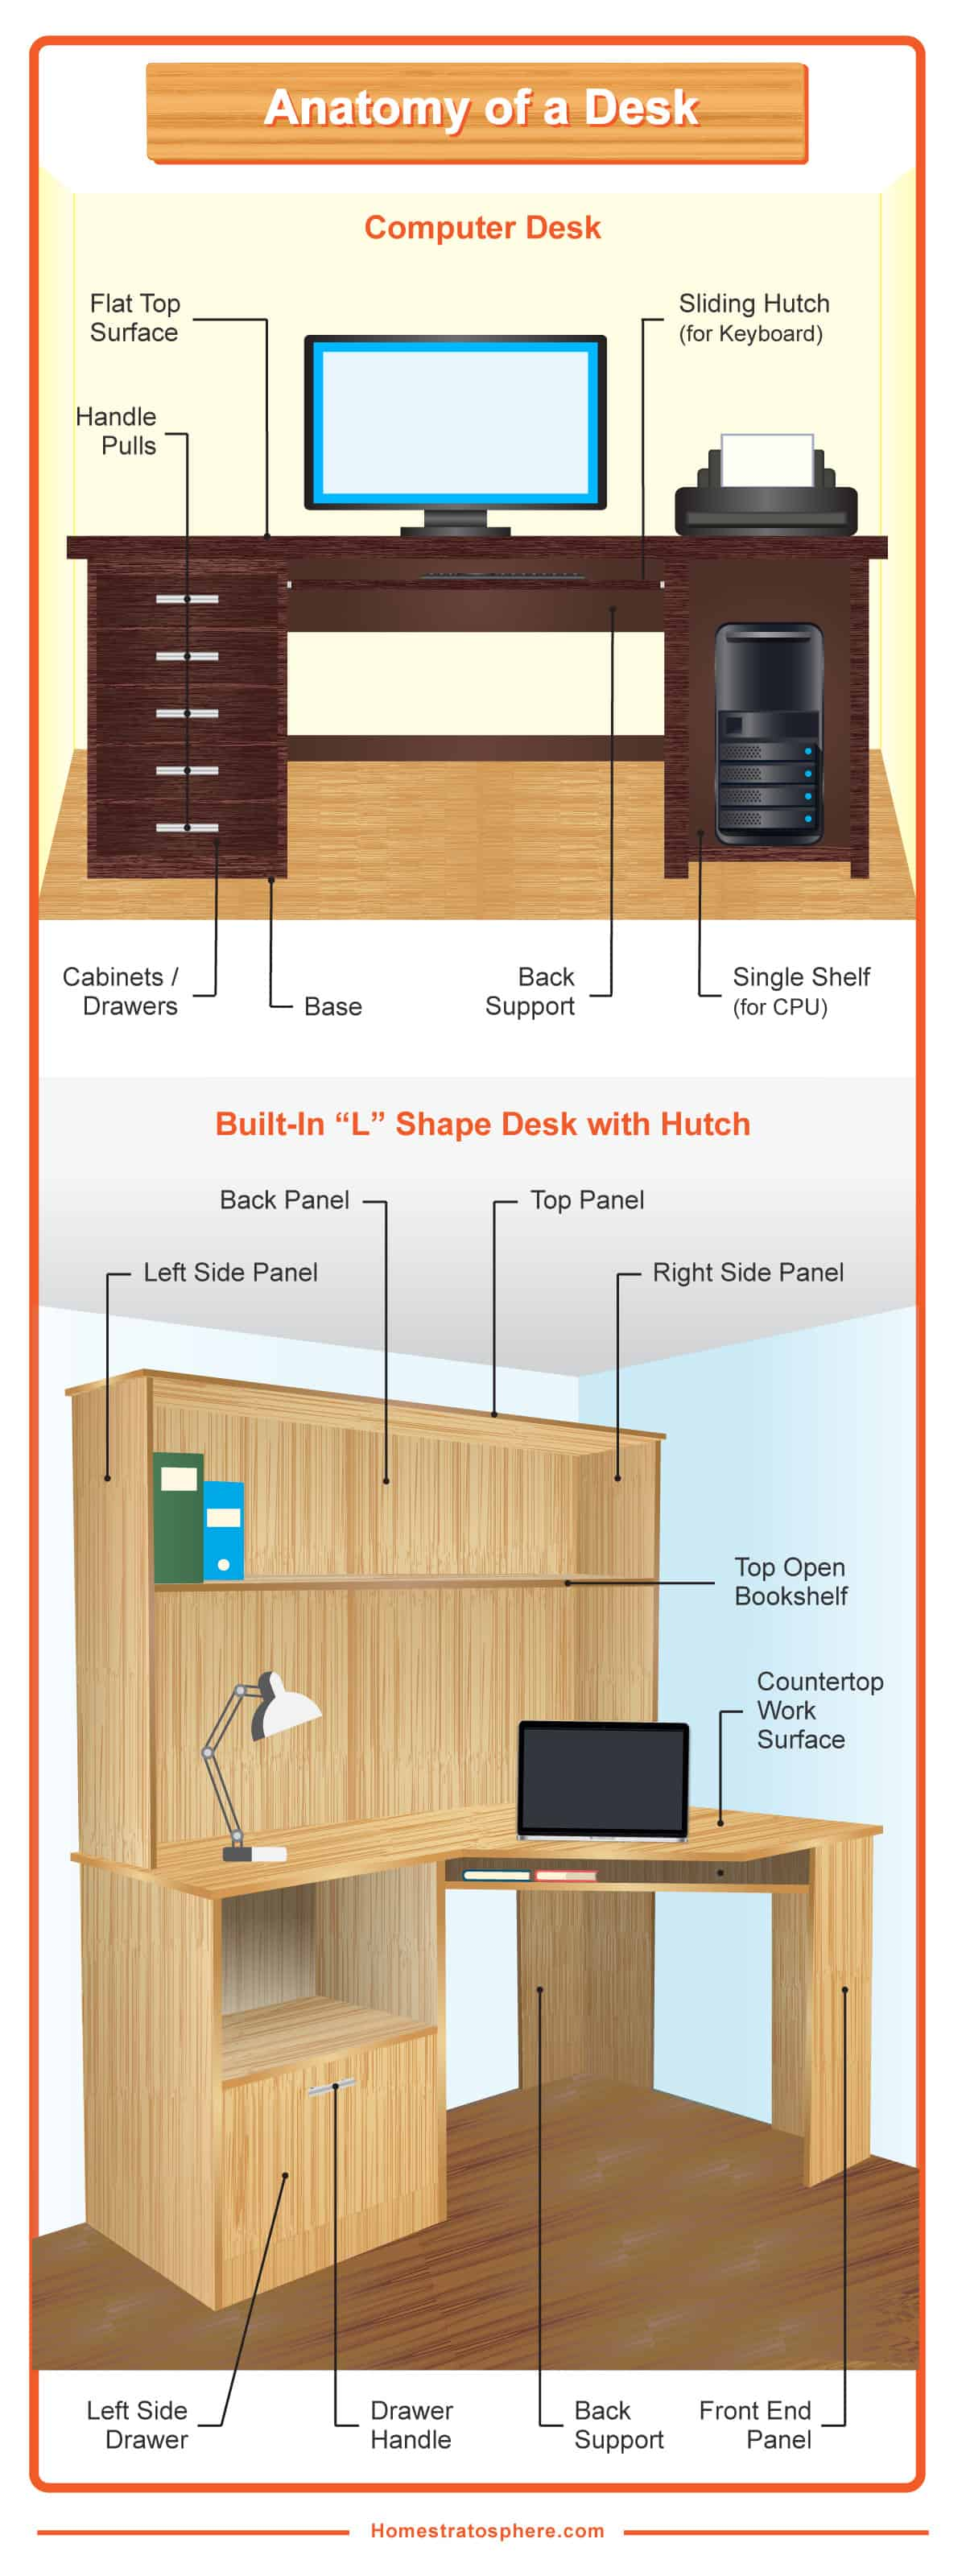 Anatomy of a home office desk - built in and regular computer desk